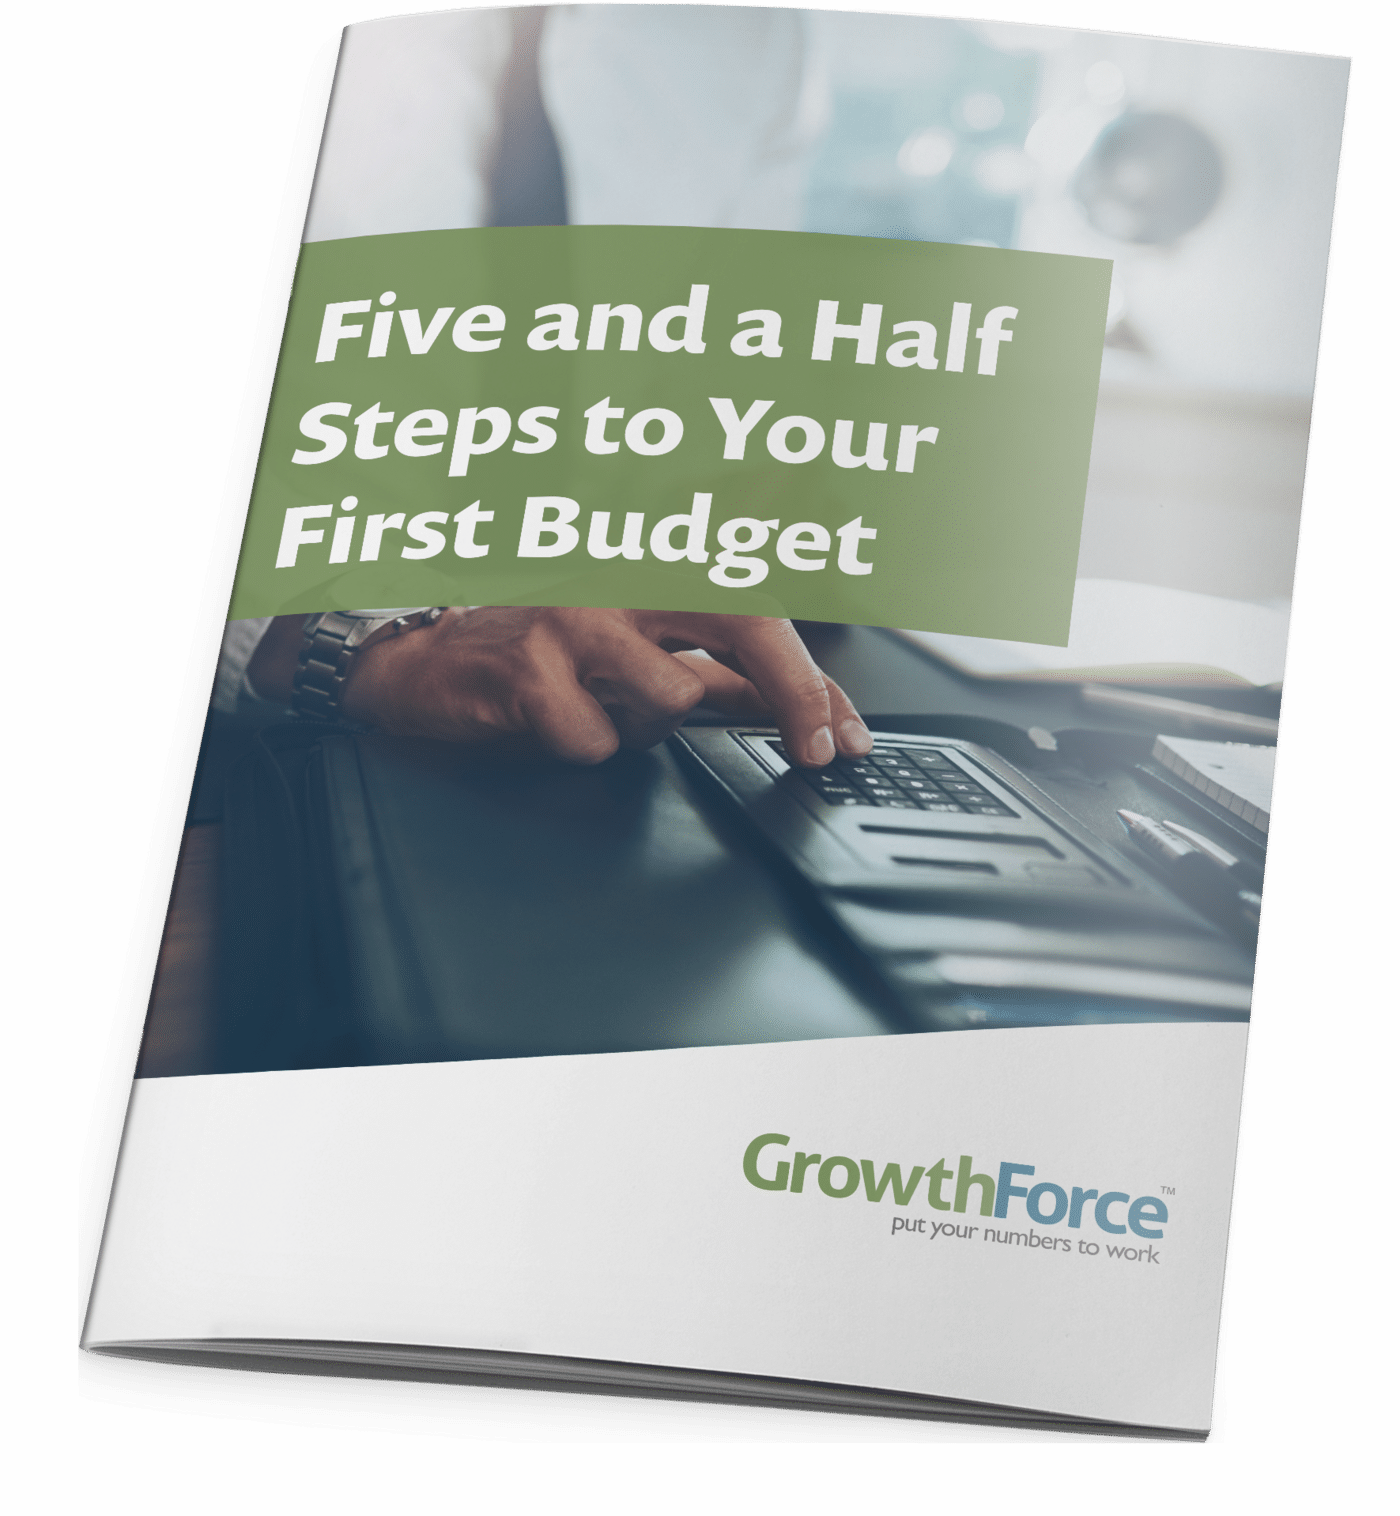 Five and a 1/2 Steps to Your First Budget